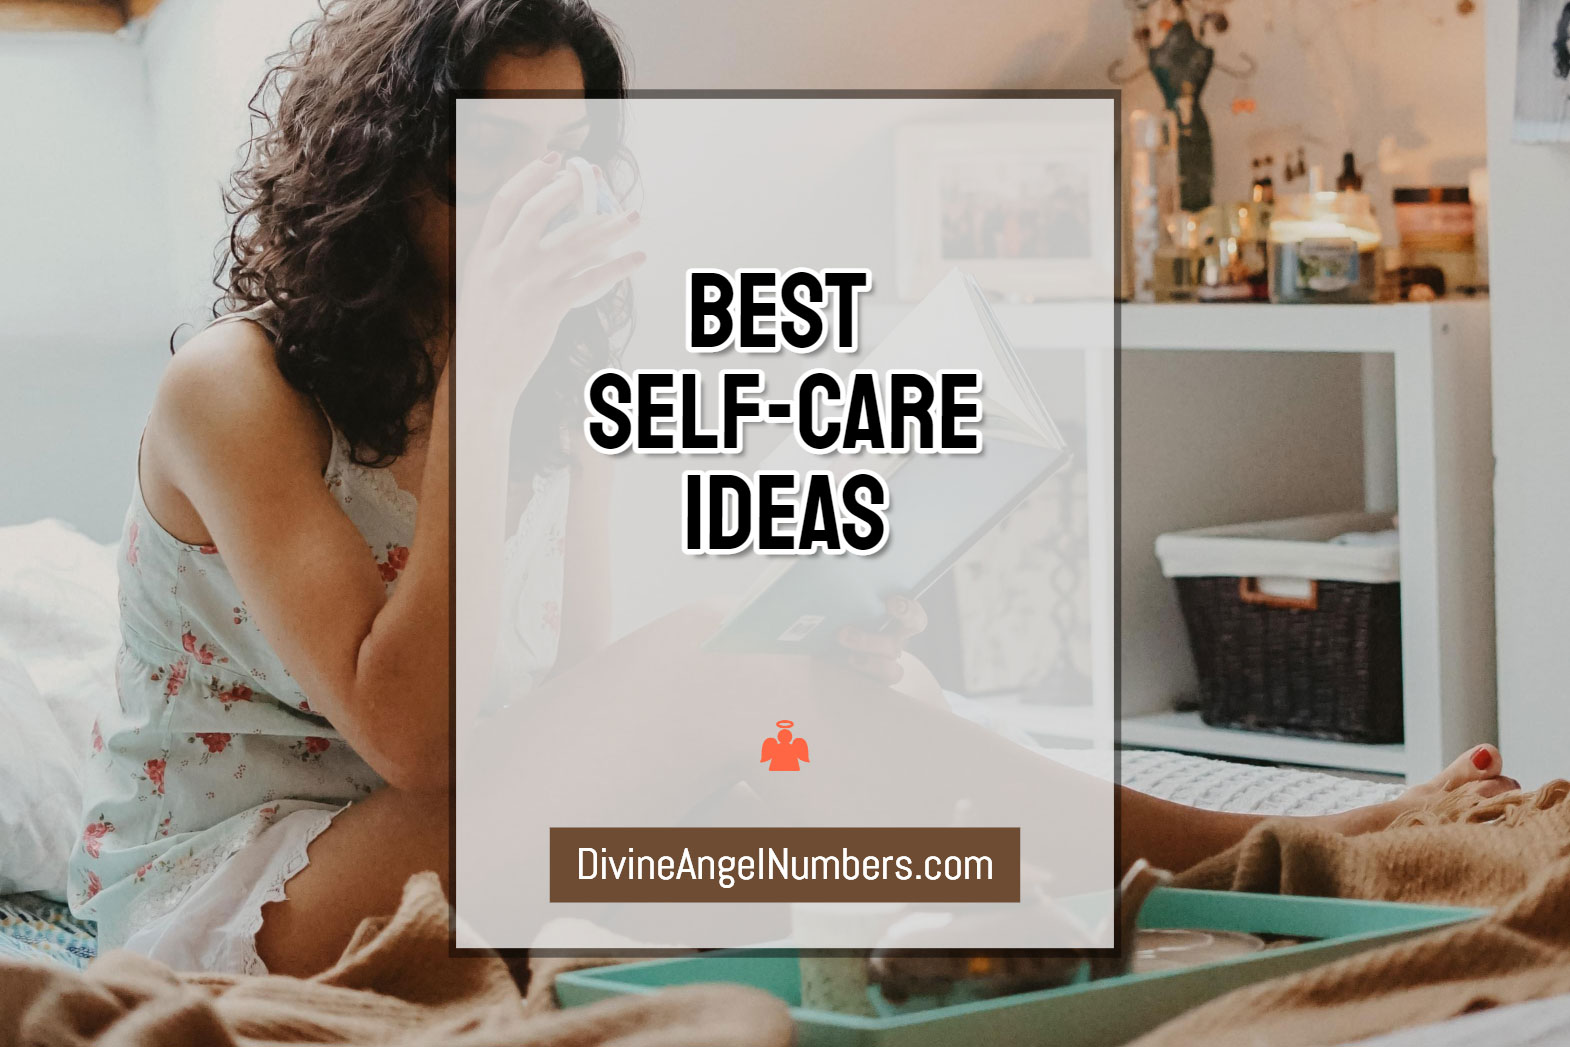 100 Best Self-Care Ideas To Fix Your Bad Day